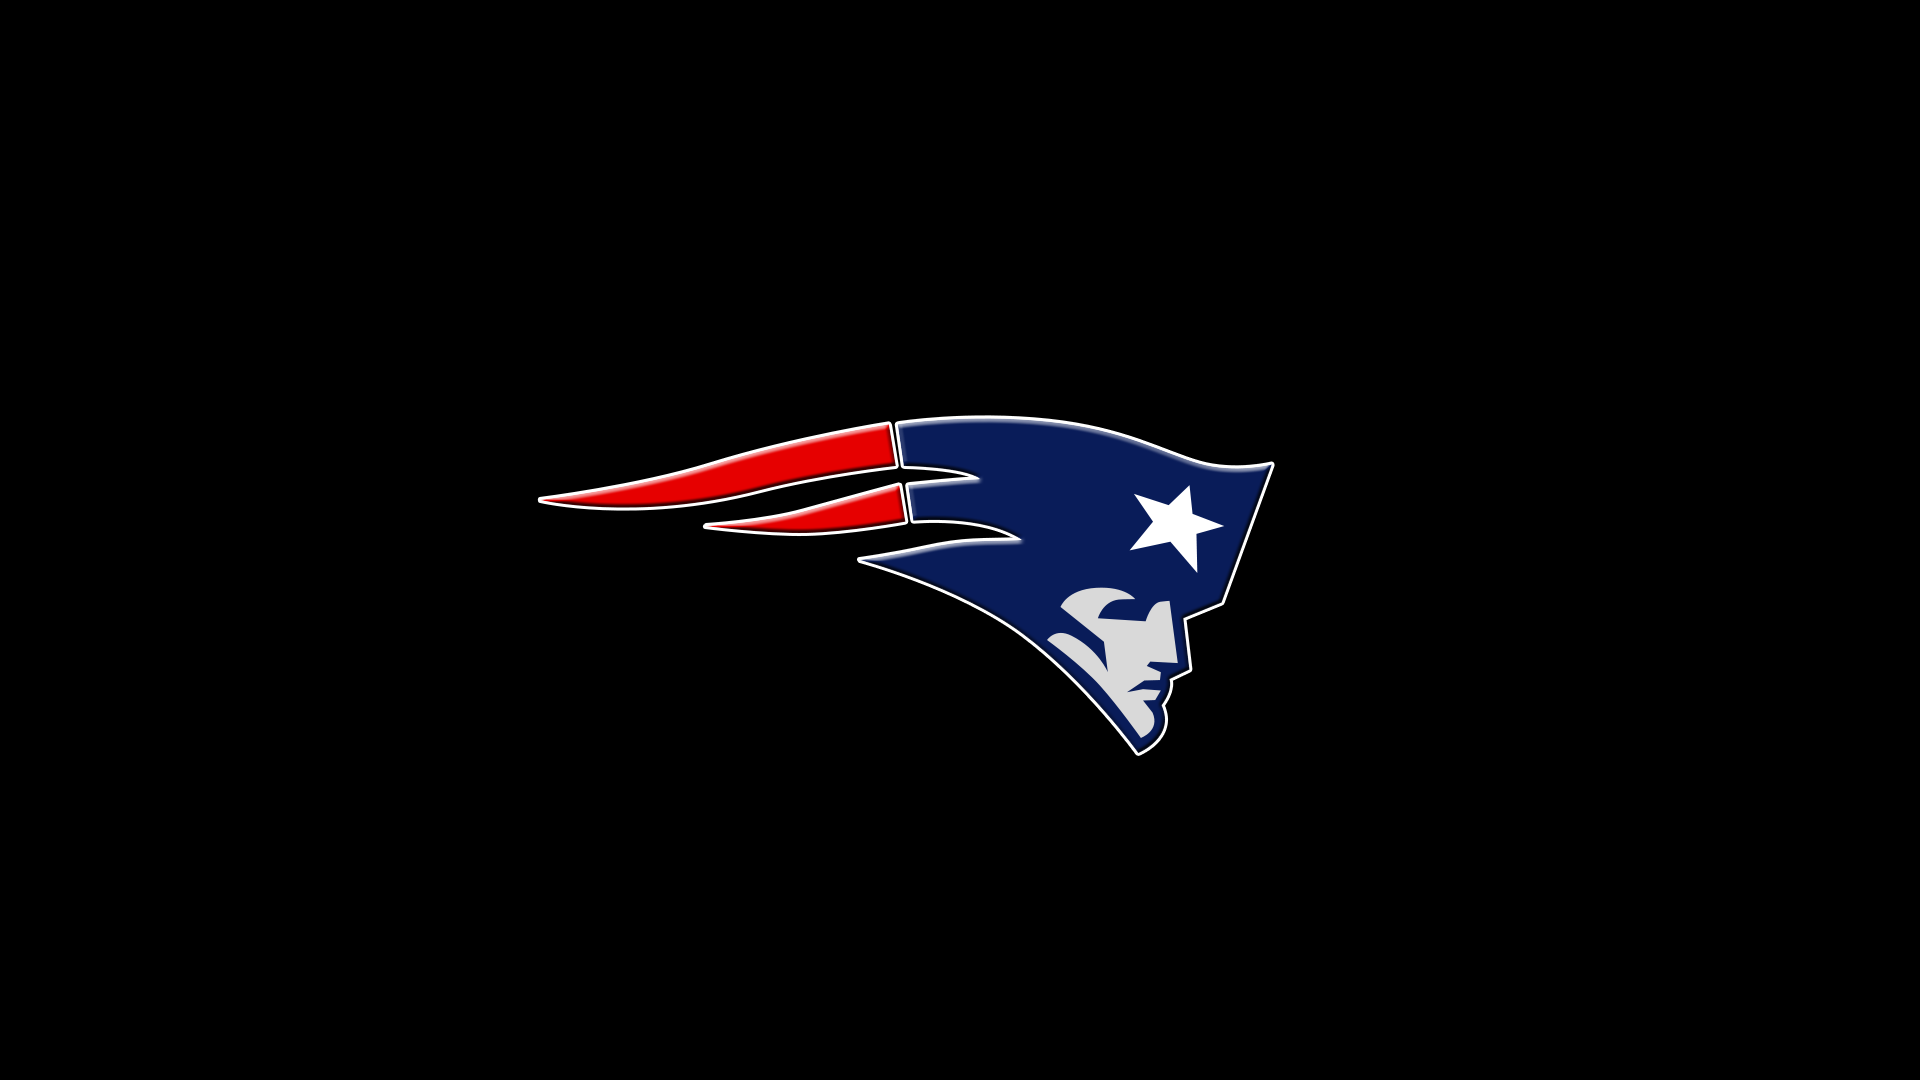 New england patriots logo desktop wallpaper 55964 1920x1080 px new england patriots logo desktop wallpaper 55964 voltagebd Choice Image